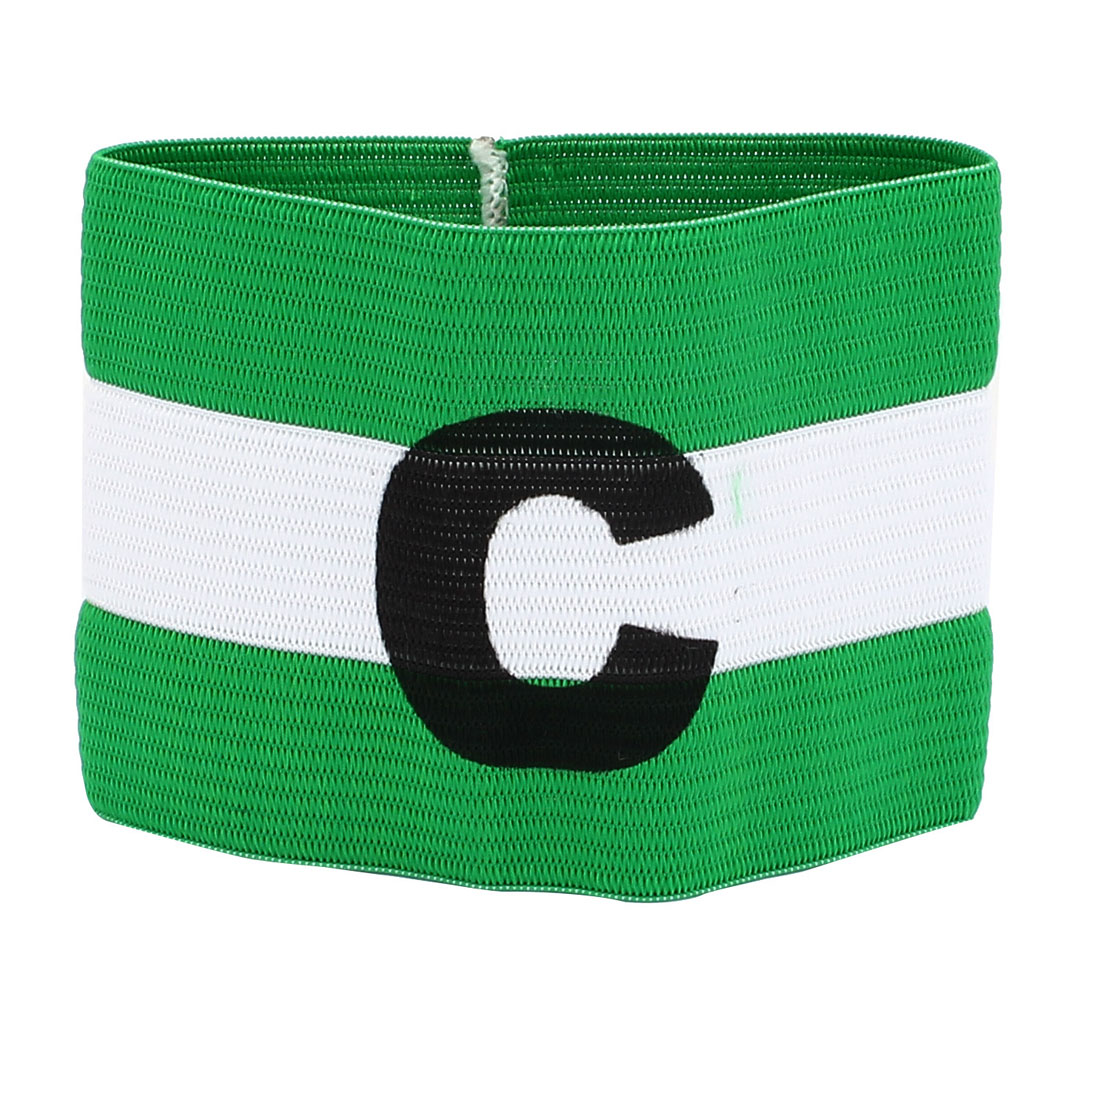 Green Black Letter C Printed Stretchy Football Soccer Traning Match Captain Armband Badge